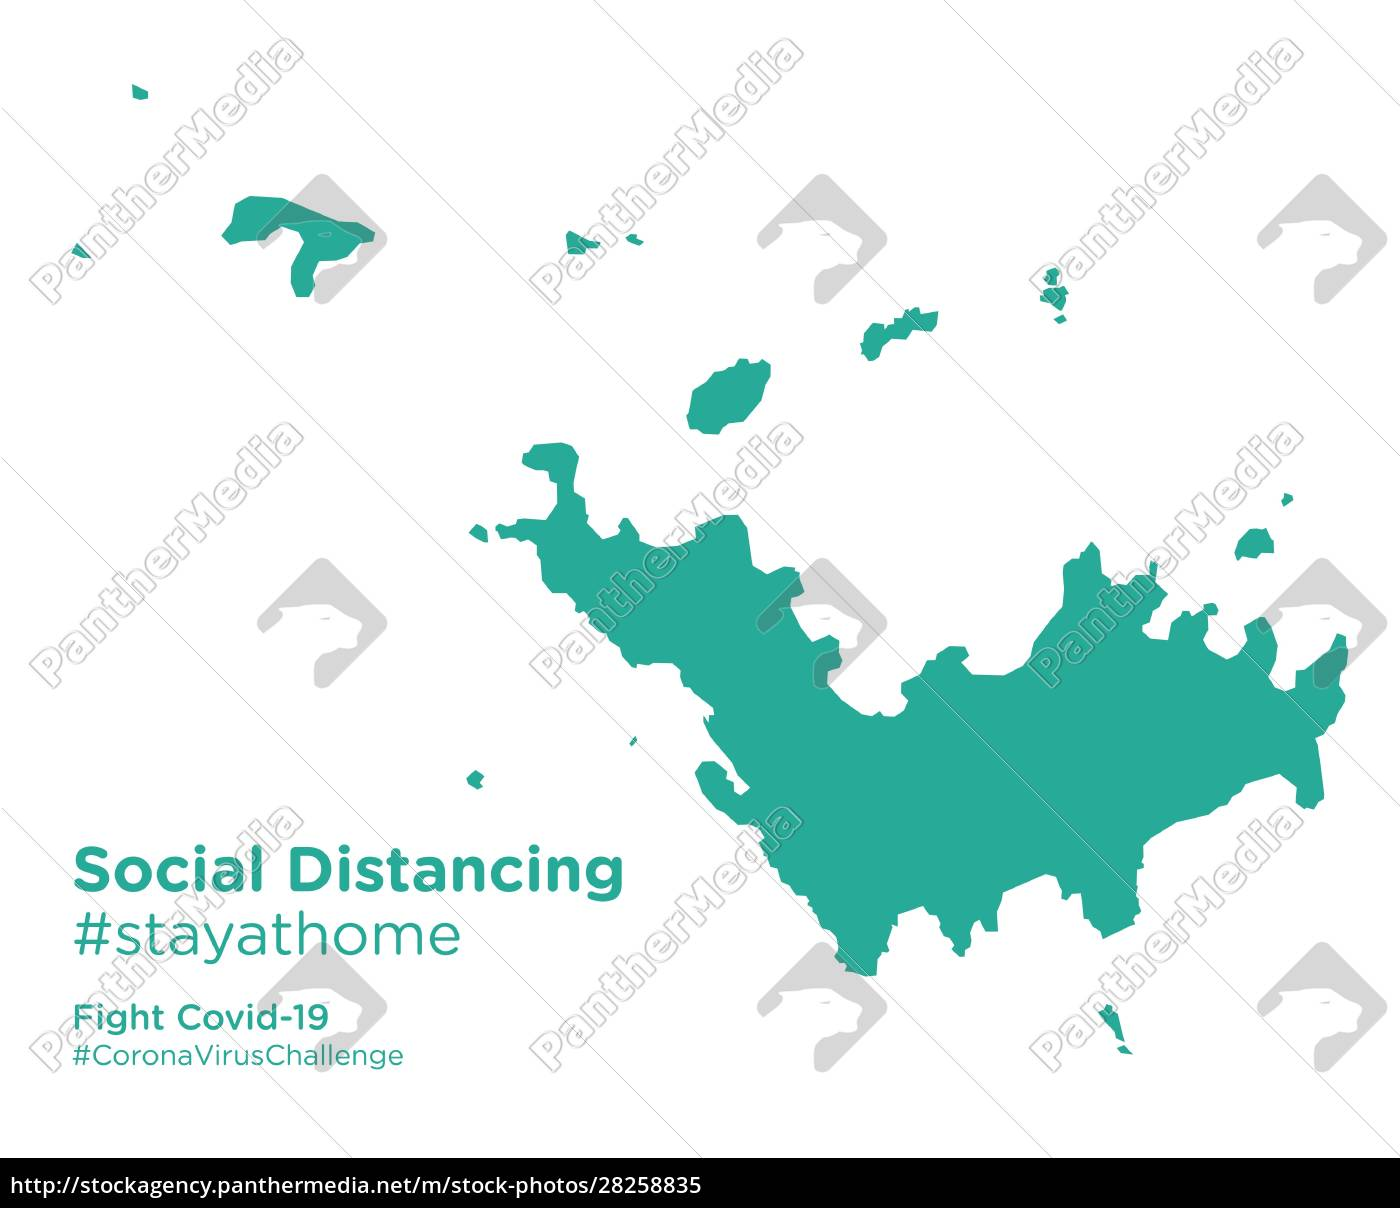 saint, barthelemy, map, with, social, distancing - 28258835